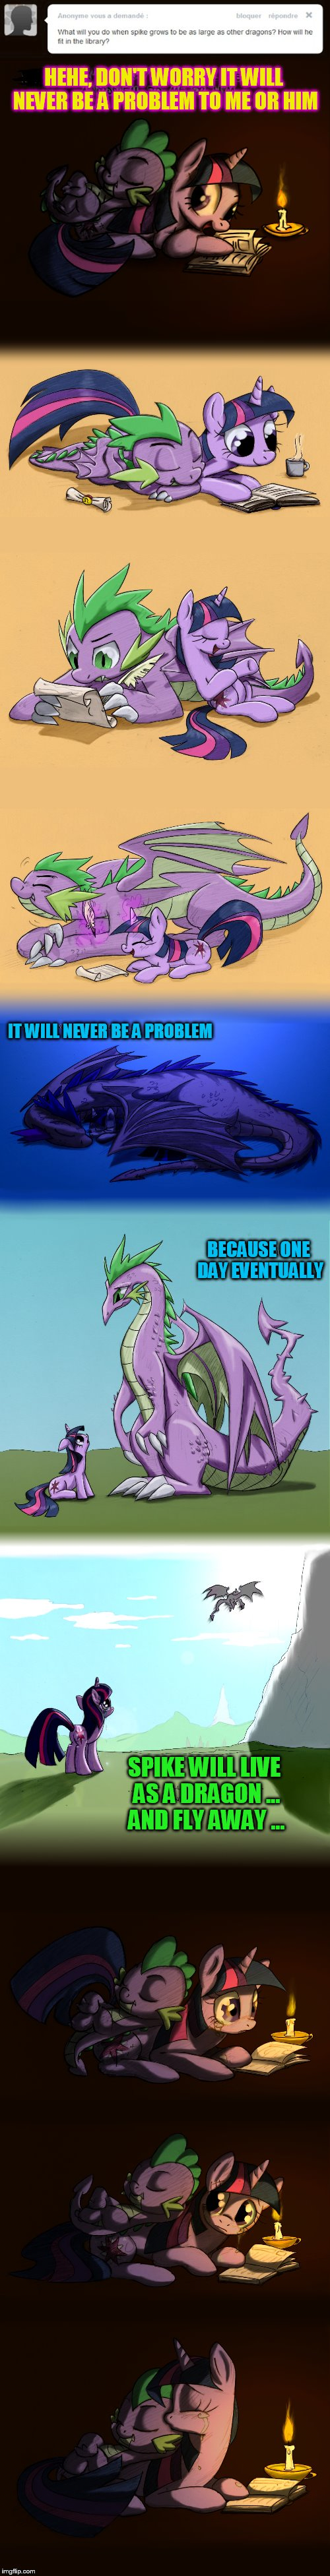 This story reminds of a reverse Puff The Magic Dragon! ( My Little Pony Meme Week - a xanderbrony event! May 3-9 ) | HEHE, DON'T WORRY IT WILL NEVER BE A PROBLEM TO ME OR HIM IT WILL NEVER BE A PROBLEM BECAUSE ONE DAY EVENTUALLY SPIKE WILL LIVE AS A DRAGON  | image tagged in my little pony week,memes,mlp,my little pony,spike,my little pony meme week | made w/ Imgflip meme maker